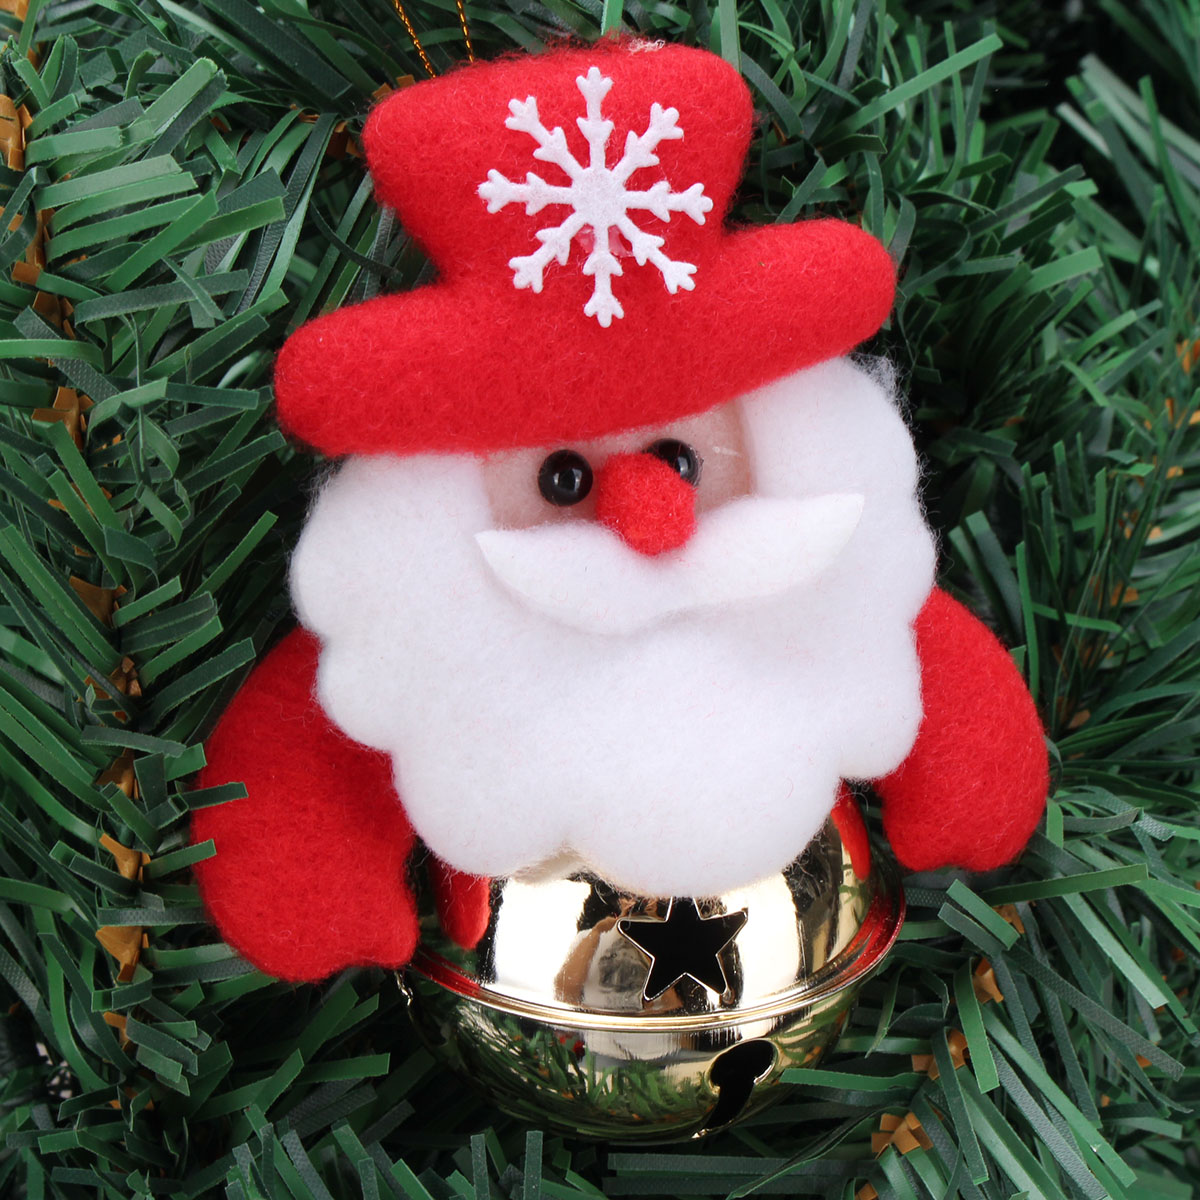 Christmas Santa Claus Snowman Elk Hanging Ornament With Bell Christmas Tree Decoration